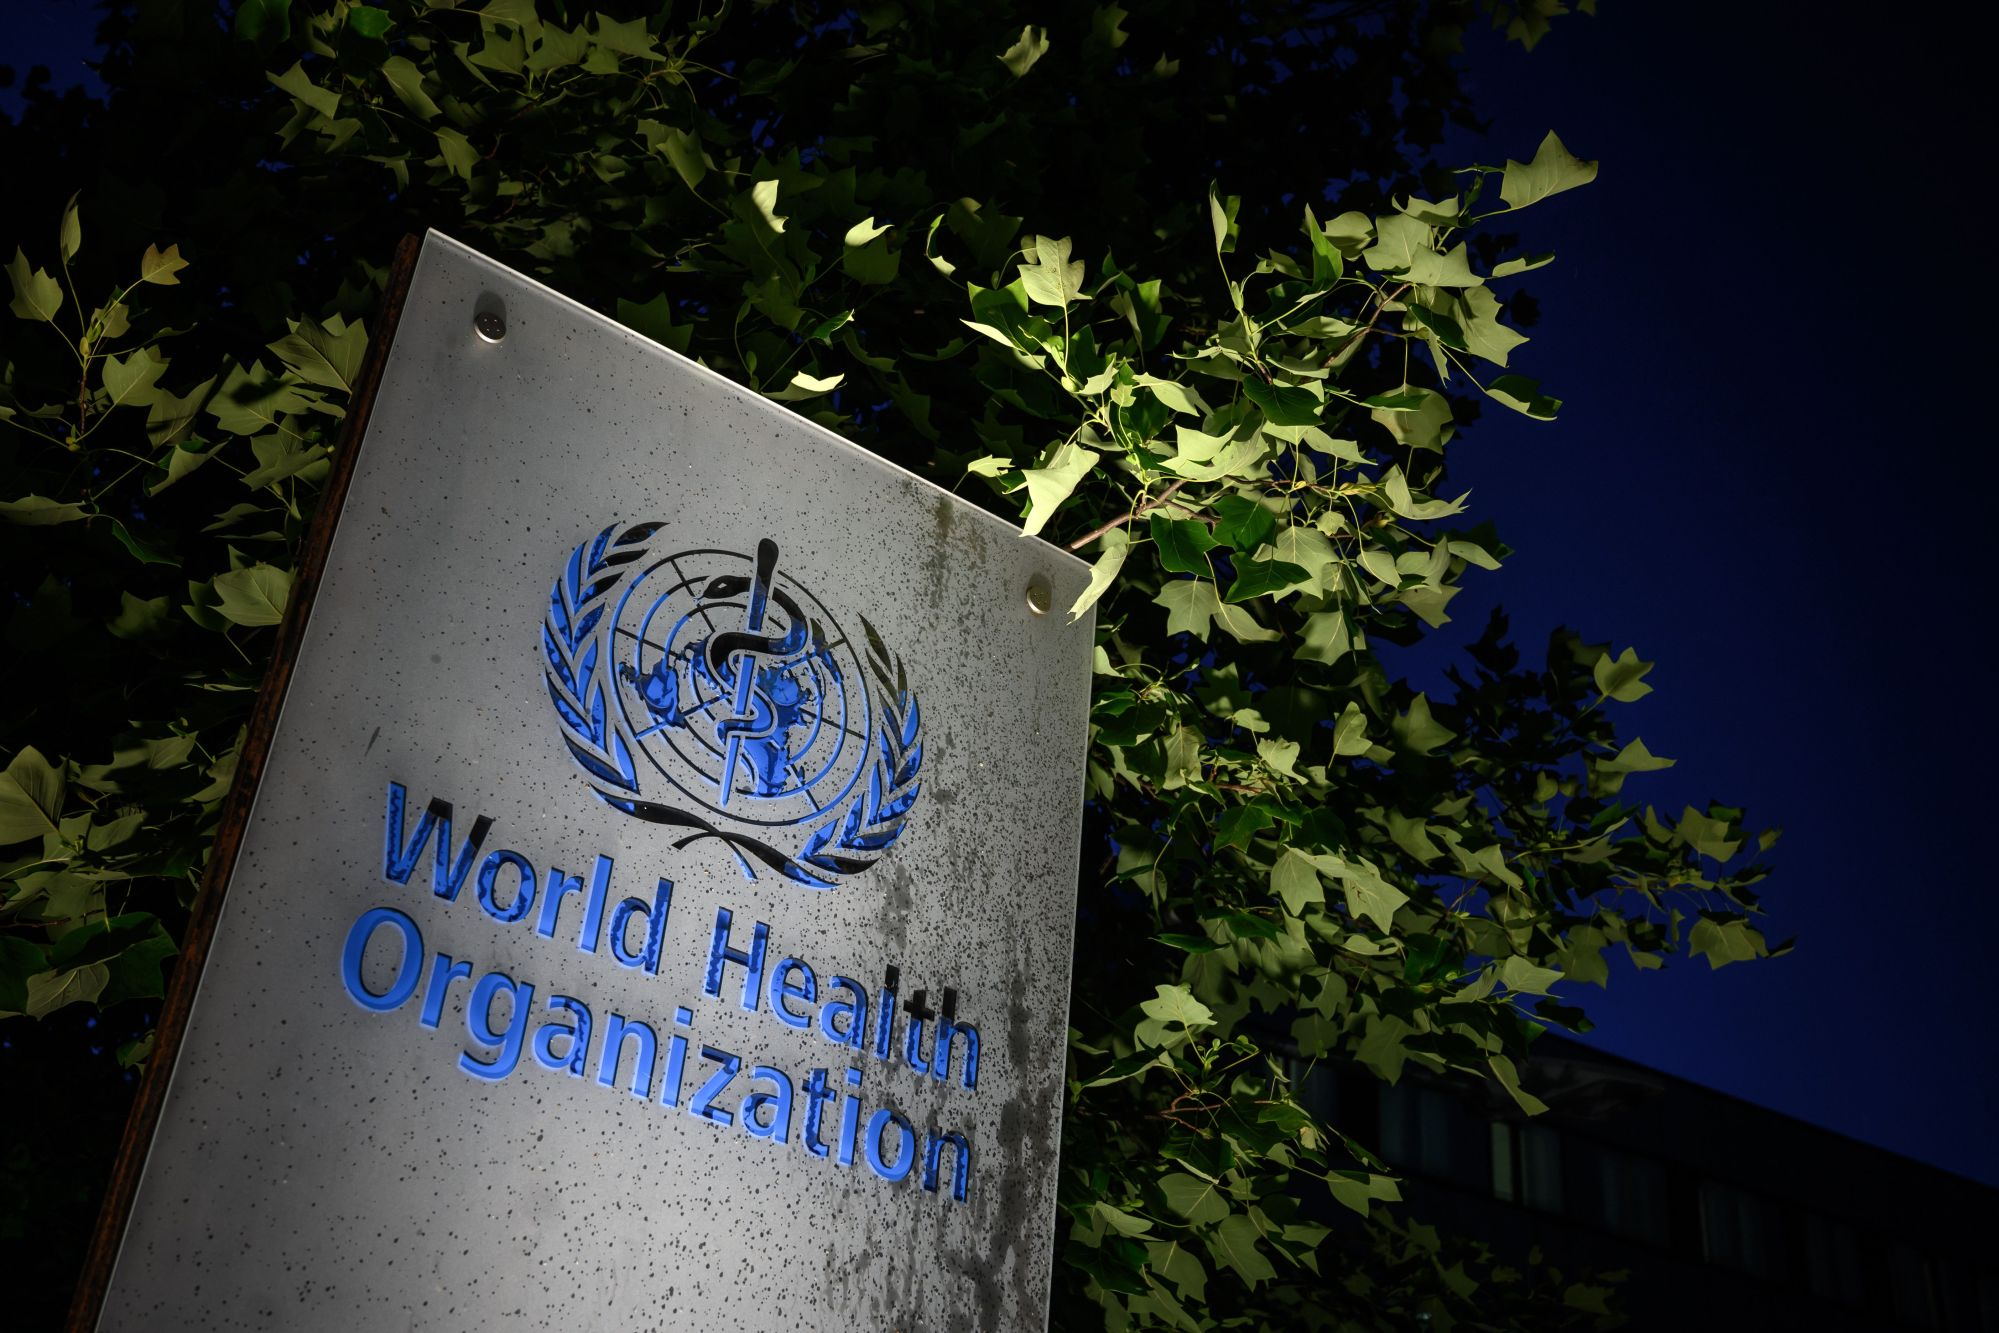 A photo taken in the late hours of May 29, 2020 shows a sign of the World Health Organization at their headquarters in Geneva amid the COVID-19 outbreak. President Donald Trump he was breaking off U.S. ties with the World Health Organization, which he says failed to do enough to combat the spread of coronavirus. (Fabrice COFFRINI/AFP via Getty Images)